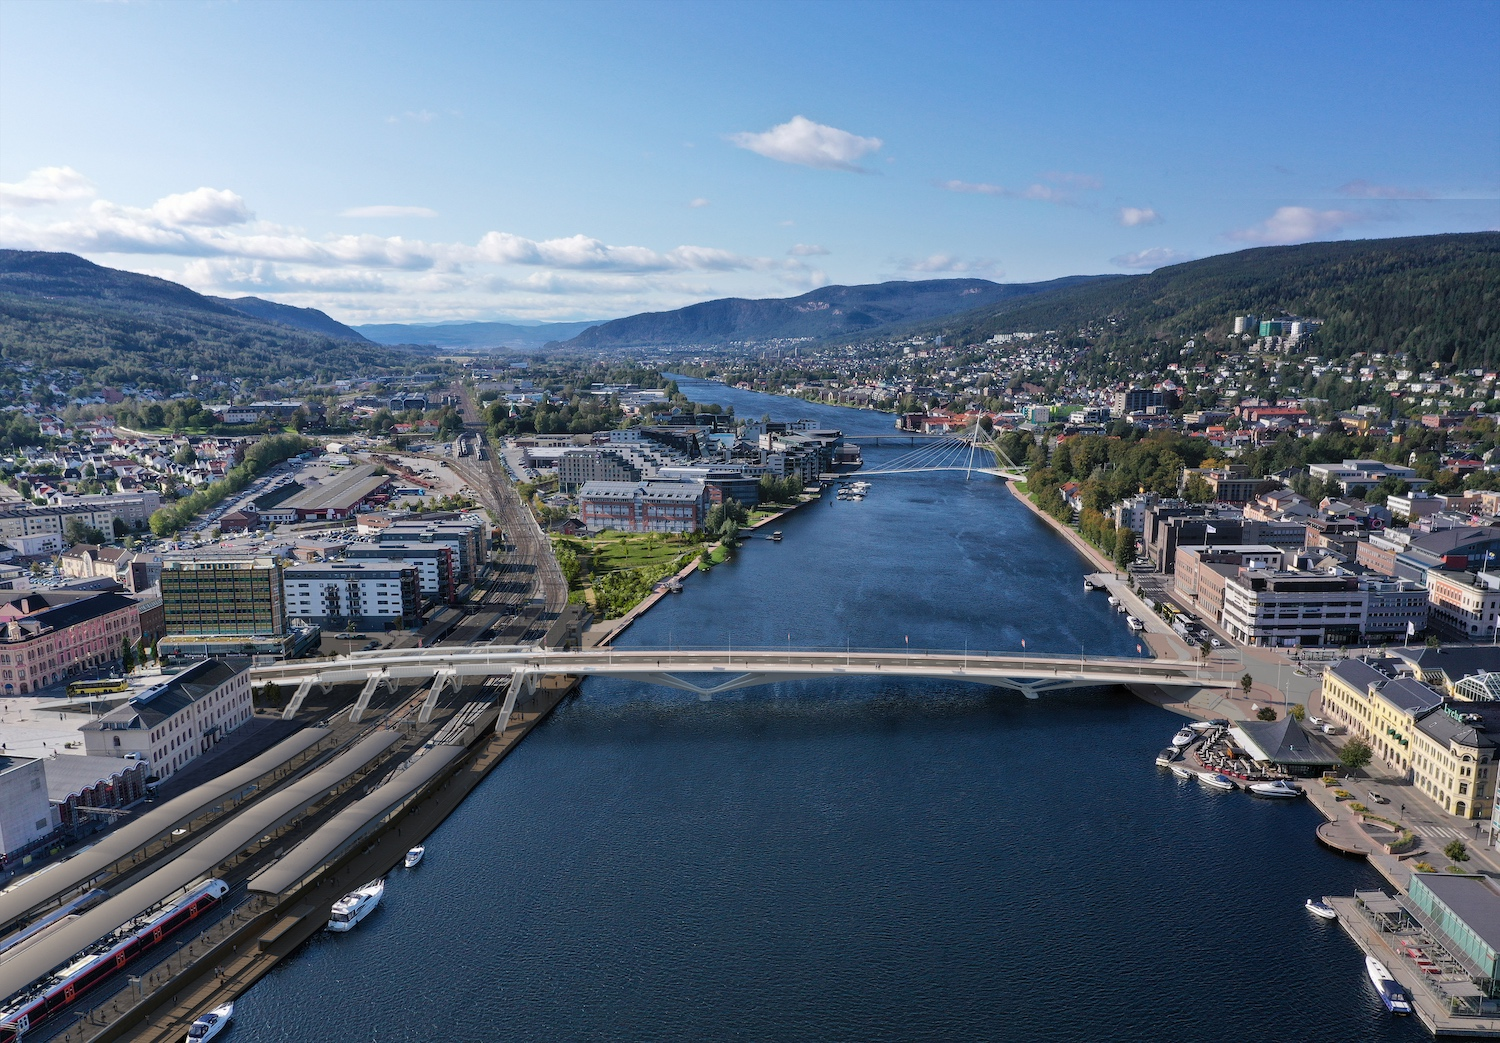 The Design of City Bridge in Norway Is Approved